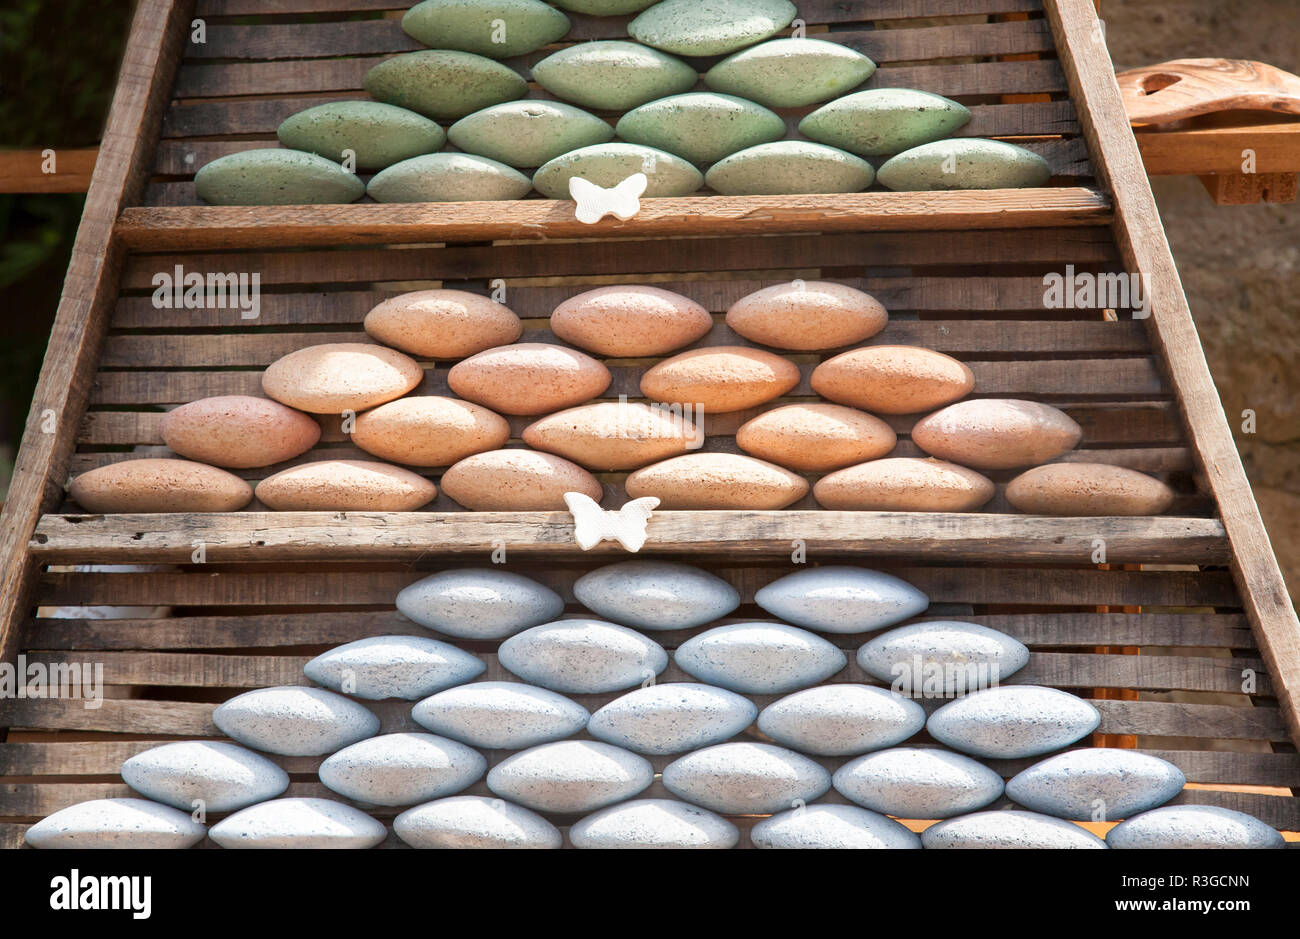 different coloured oval bars of soap stacked nicely in a wooden frame - Stock Image